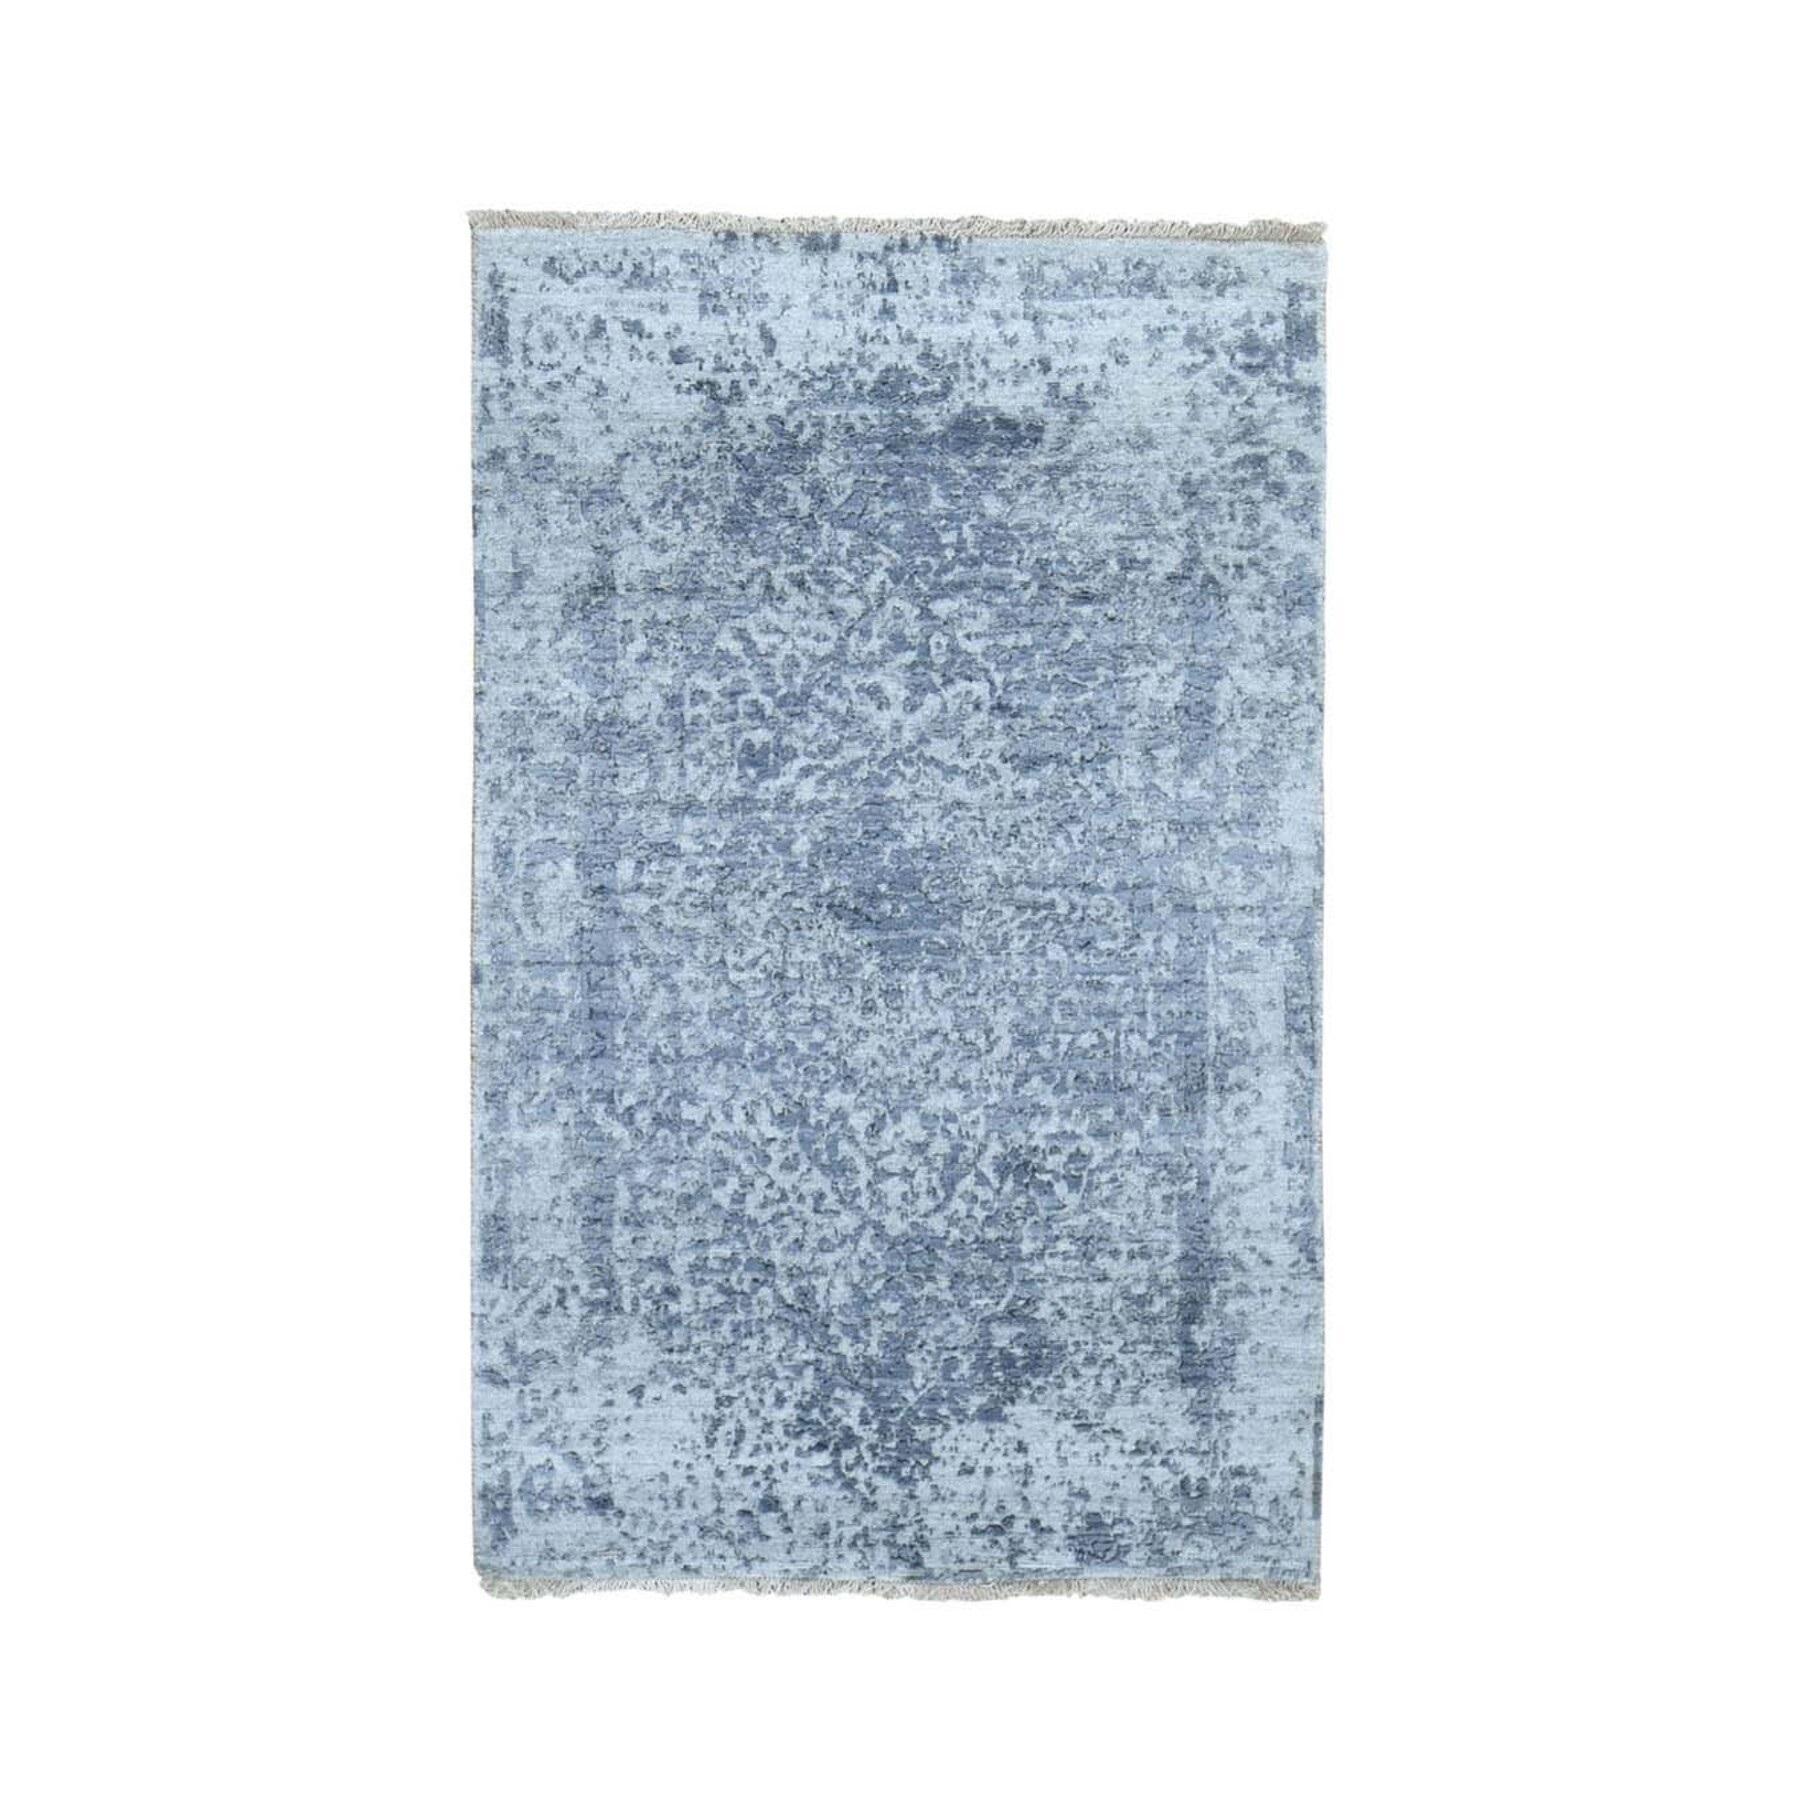 """3'X4'10"""" Silver-Dark Gray Erased Persian Design Wool And Pure Silk Hand Knotted Oriental Rug  moad7be8"""